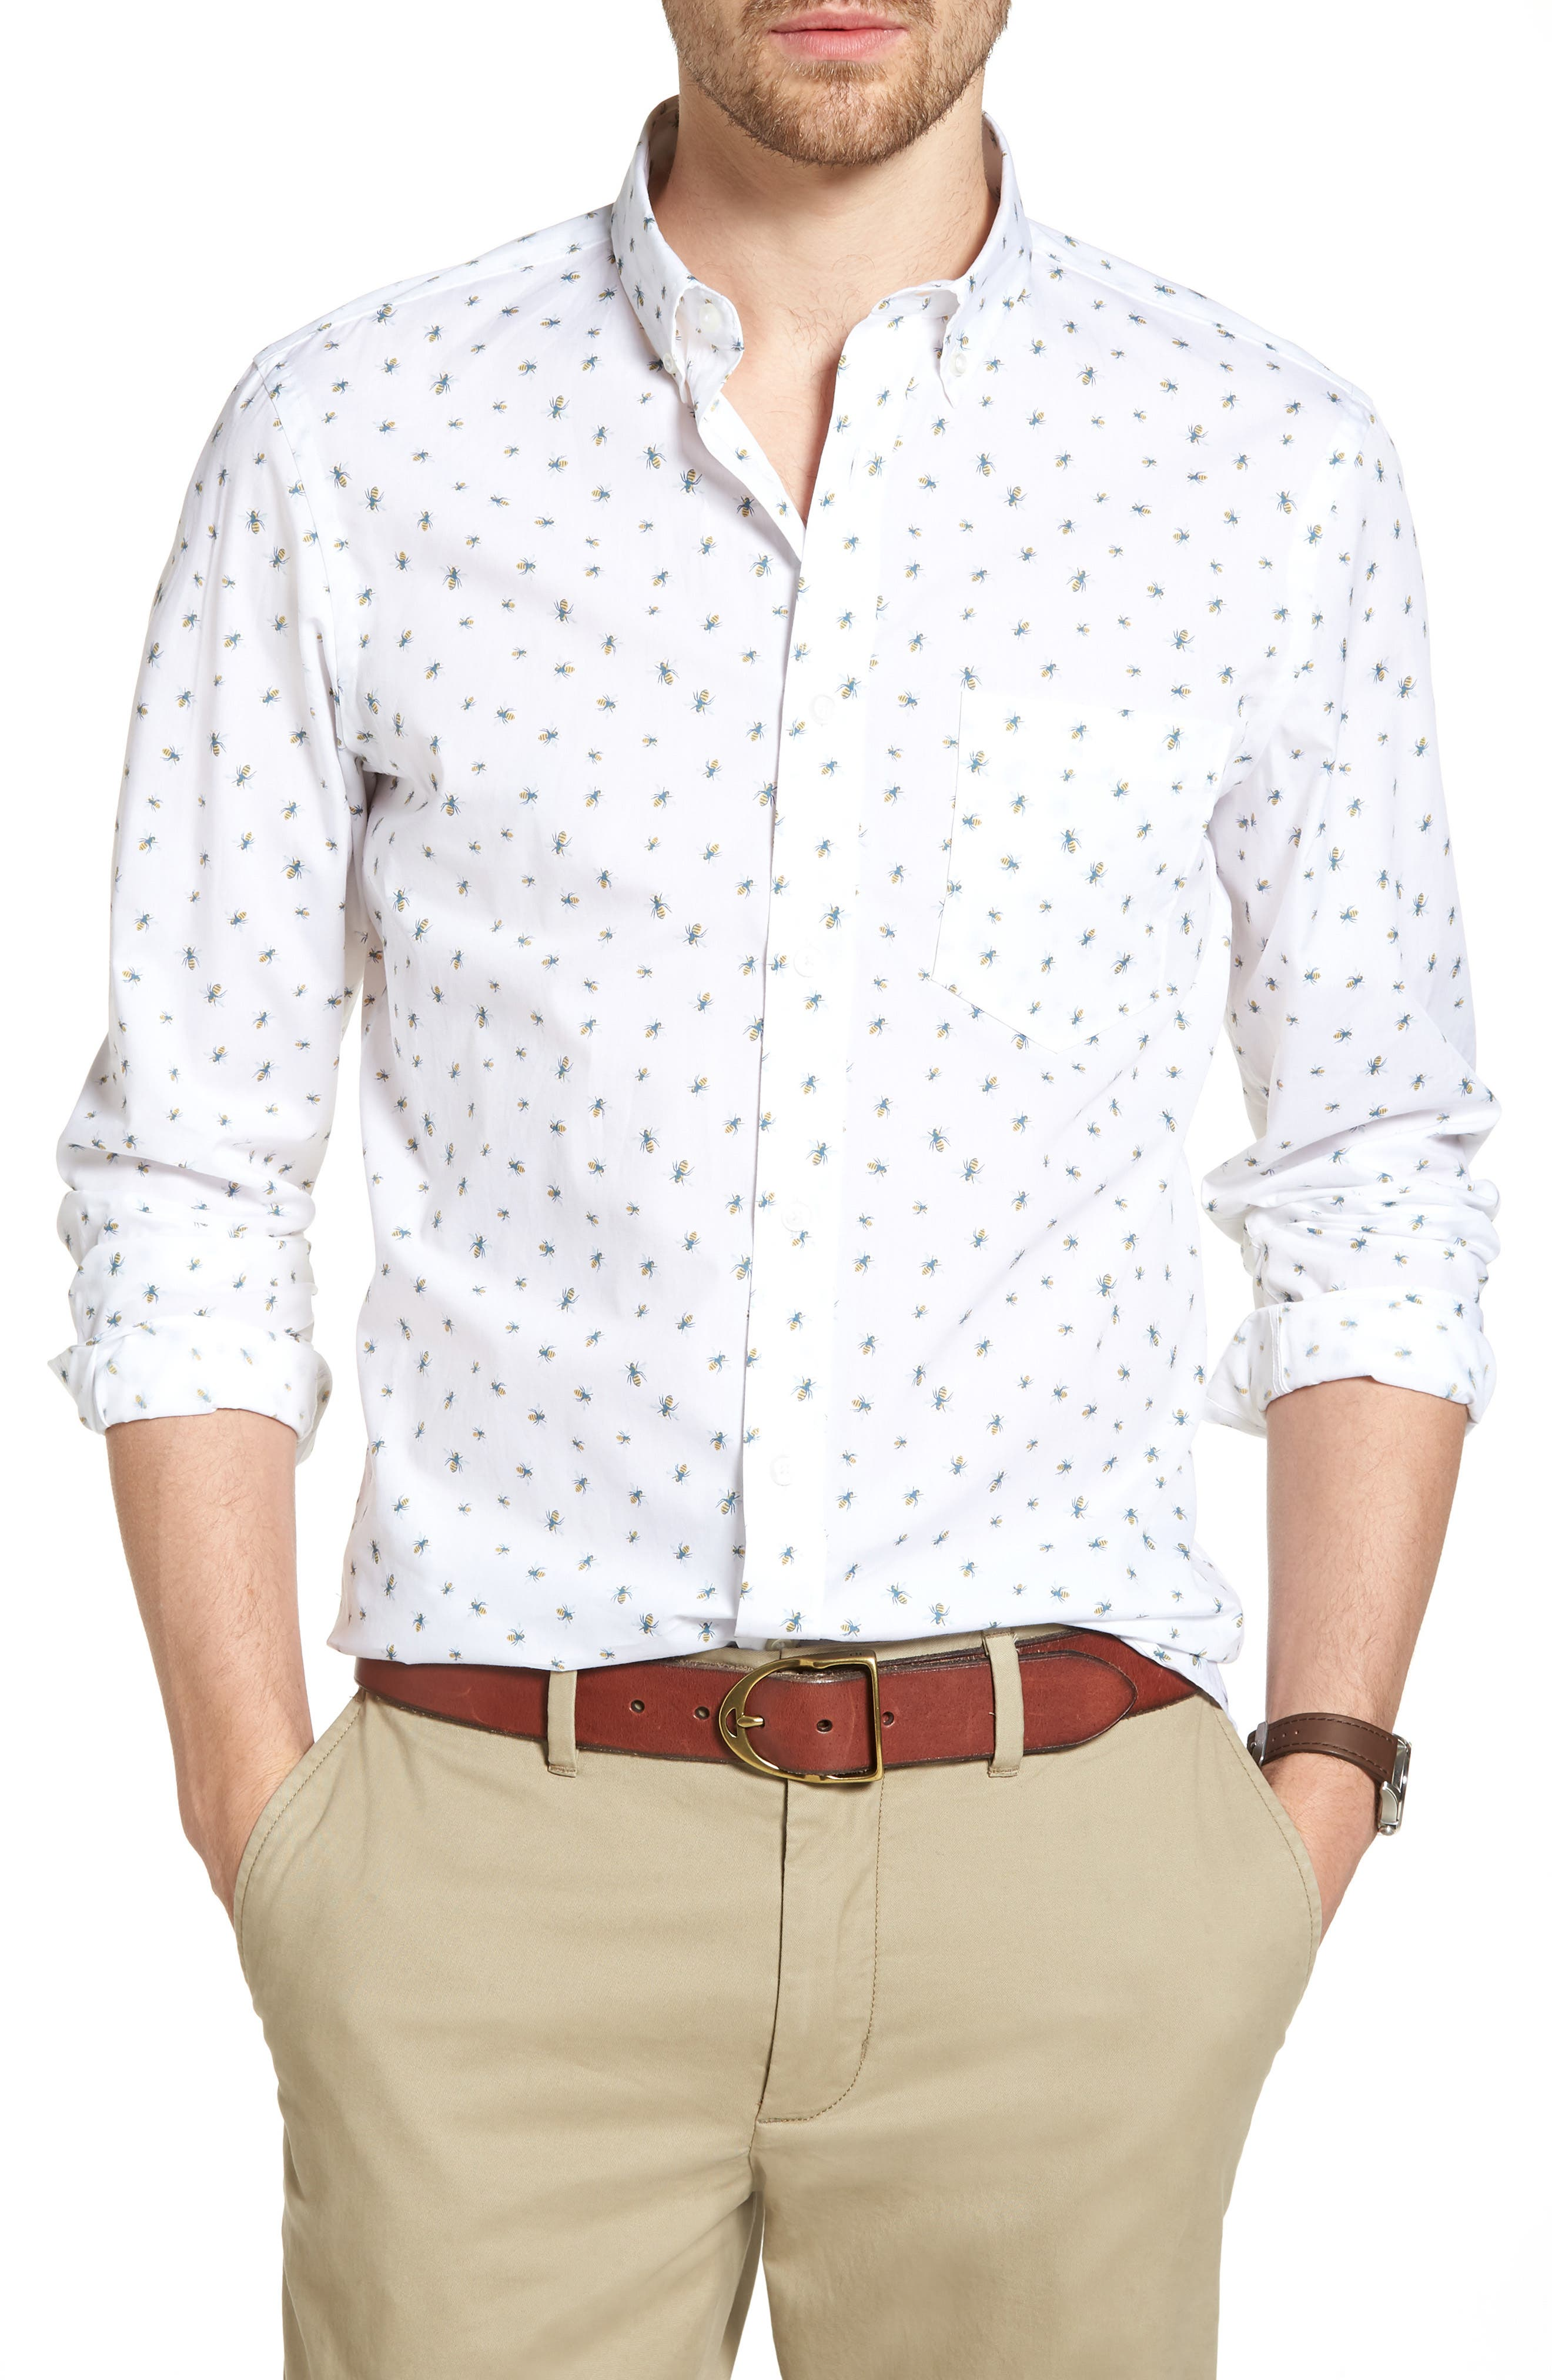 Trim Fit Bee Print Sport Shirt,                         Main,                         color, White Bumble Bees